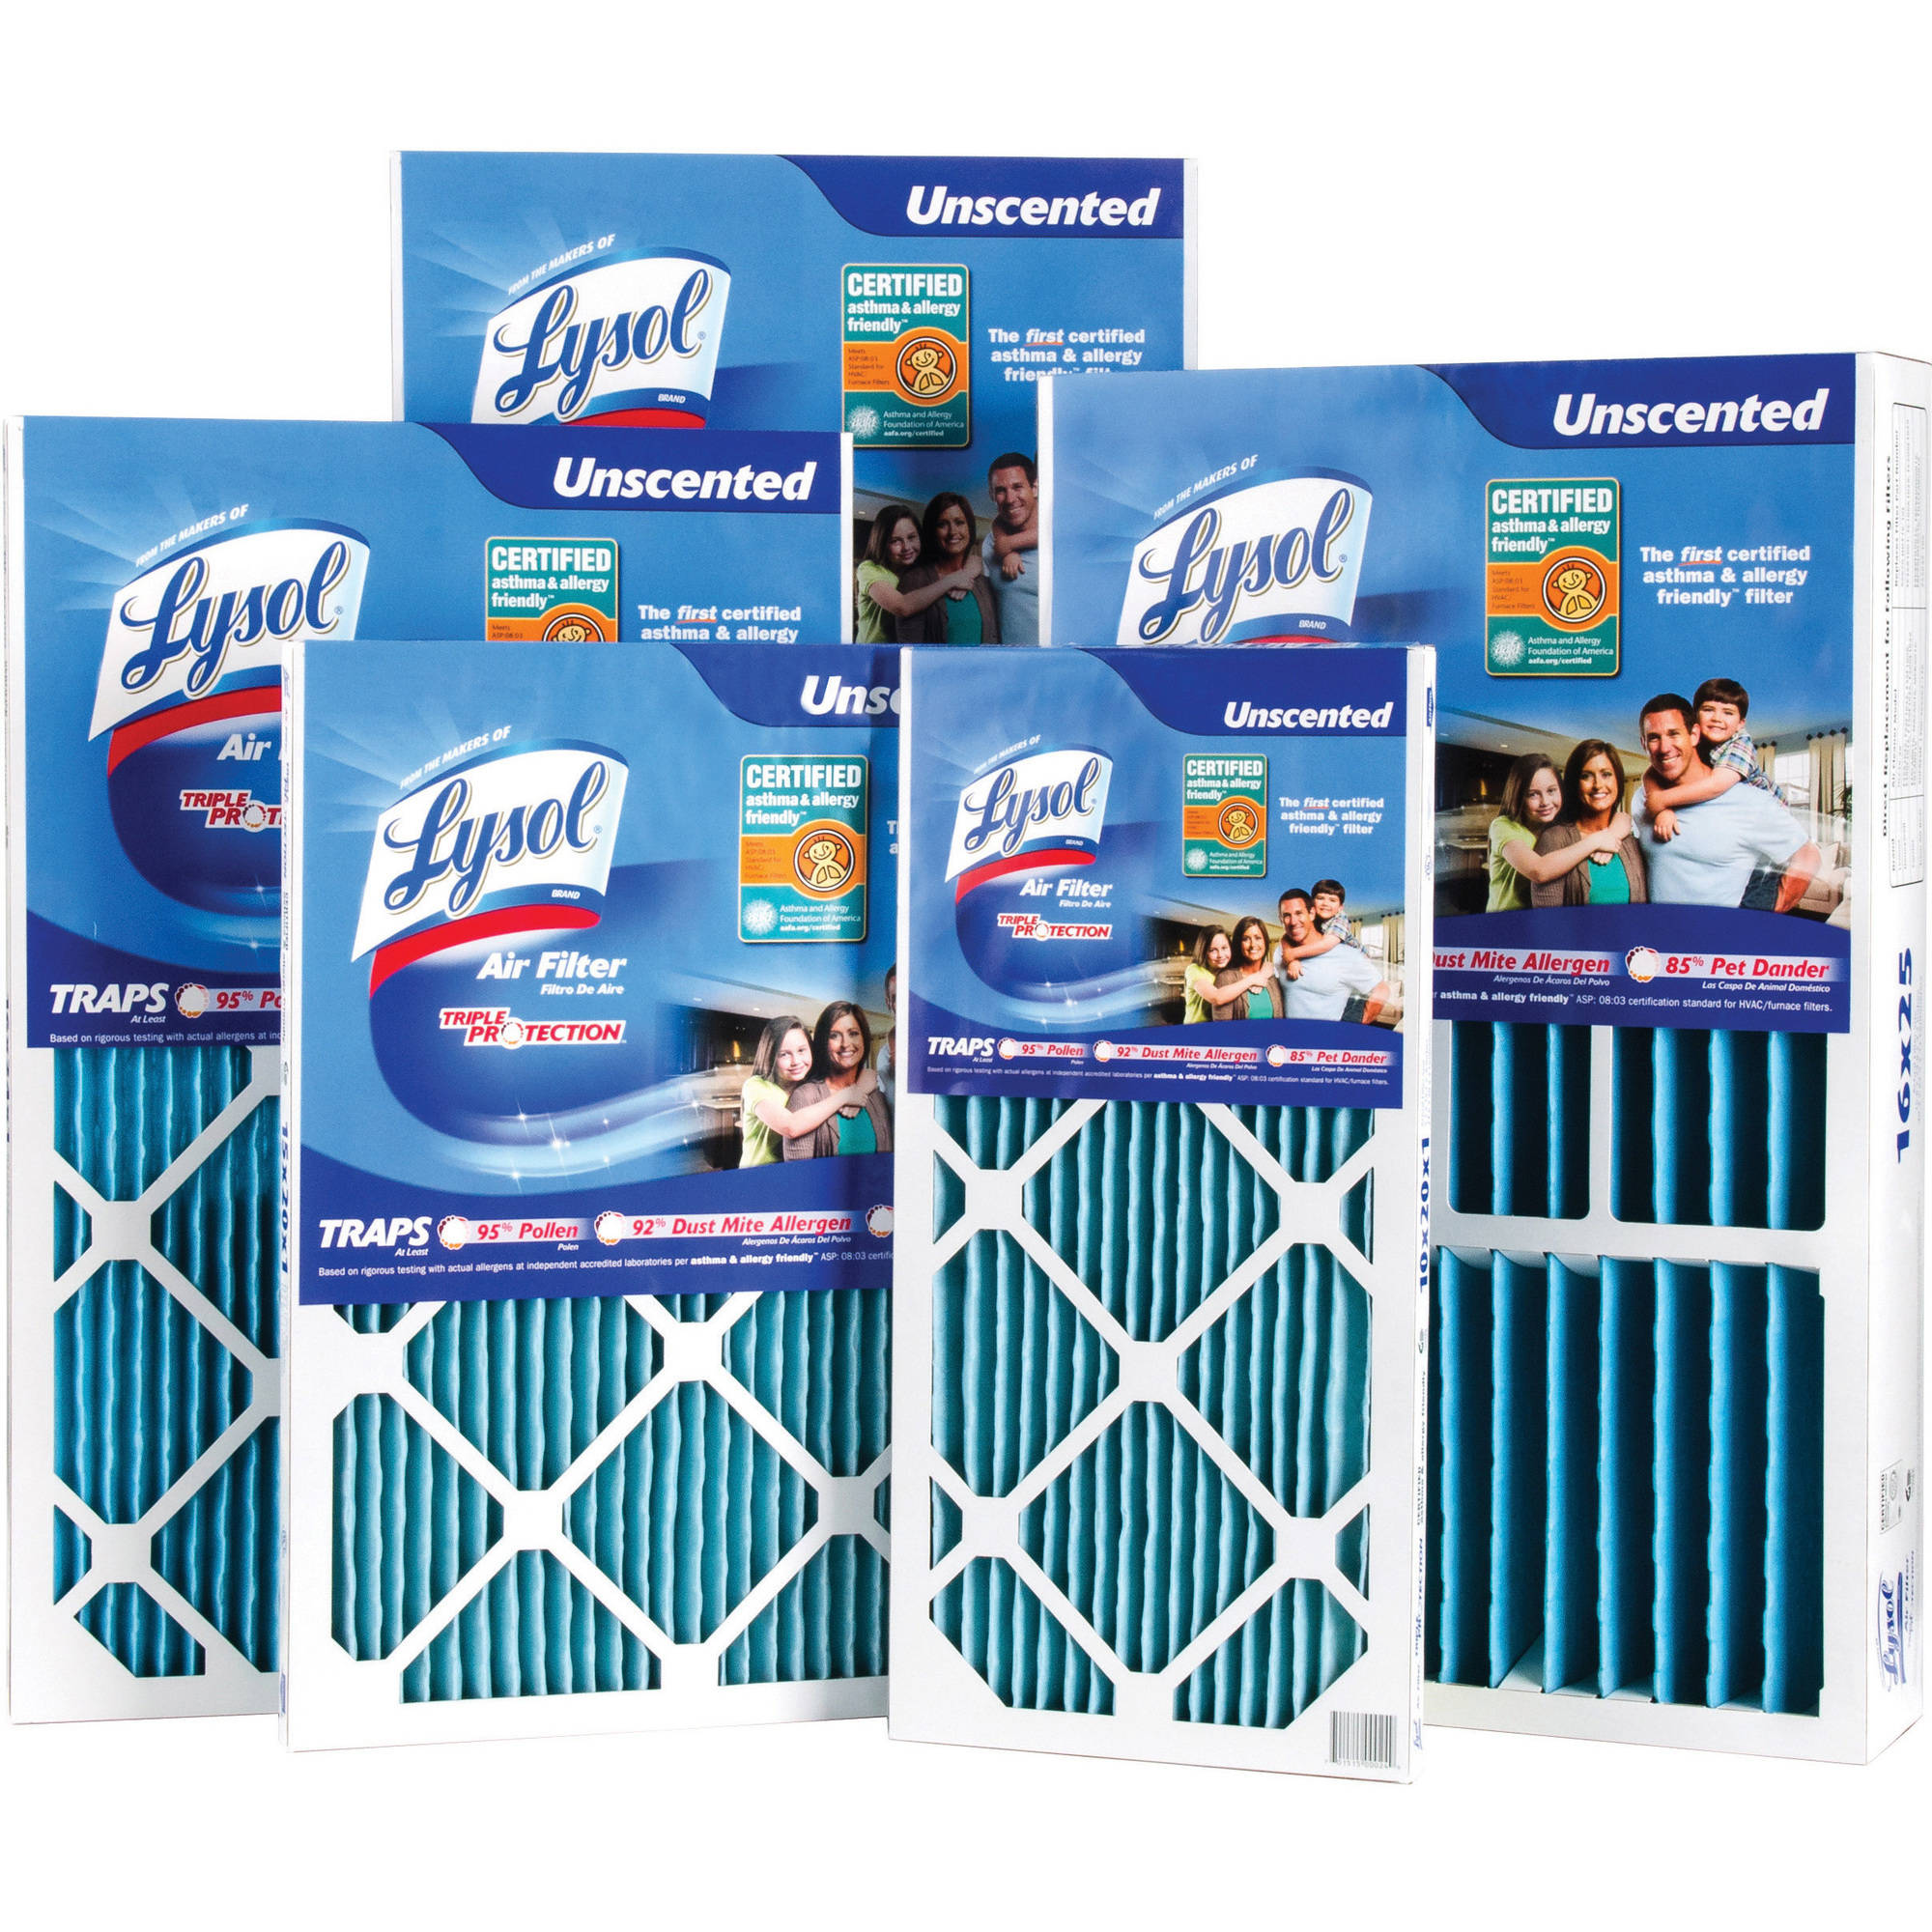 Lysol Triple Protection Air Filters, 6-Pack 10001-106-0006